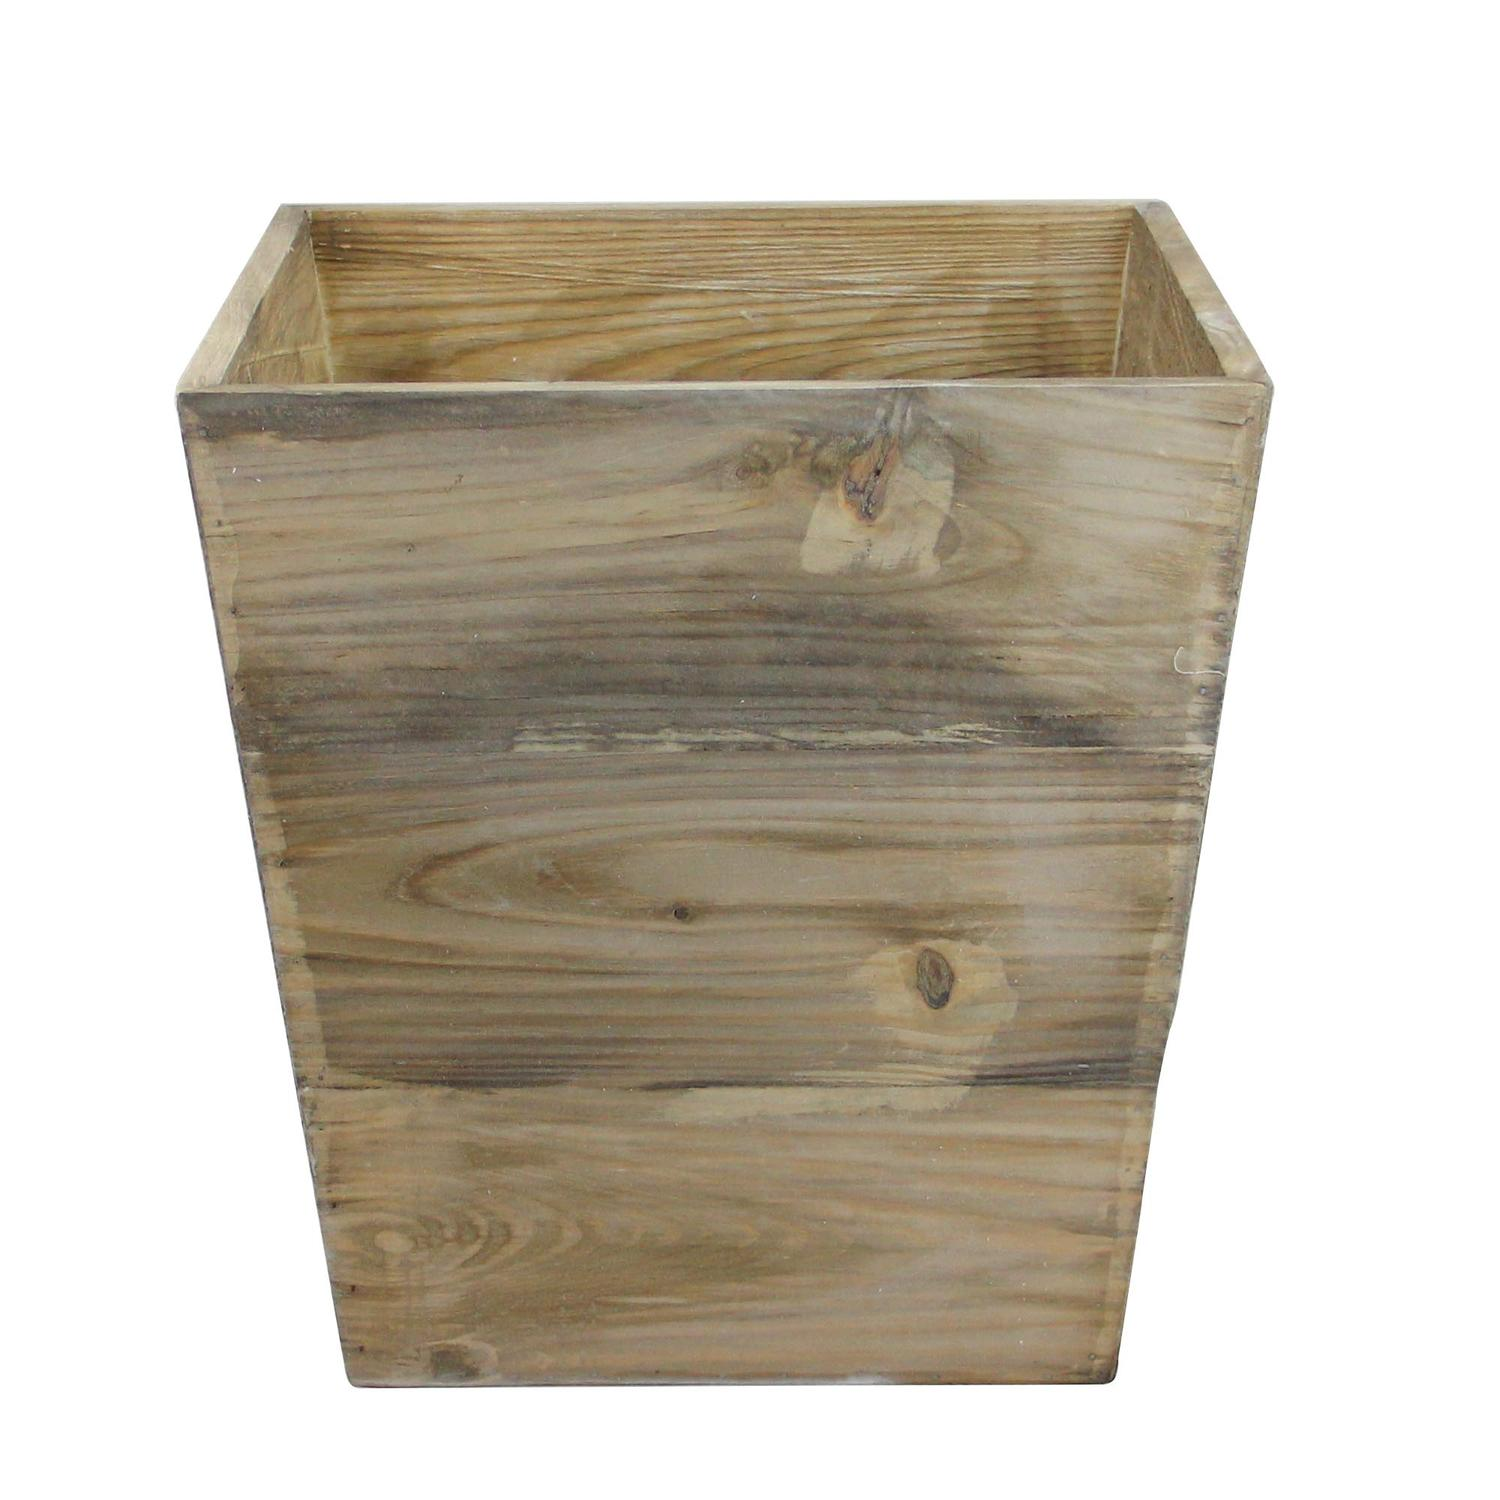 "13.75"" Country Rustic Natural Wood Storage Bin Container"